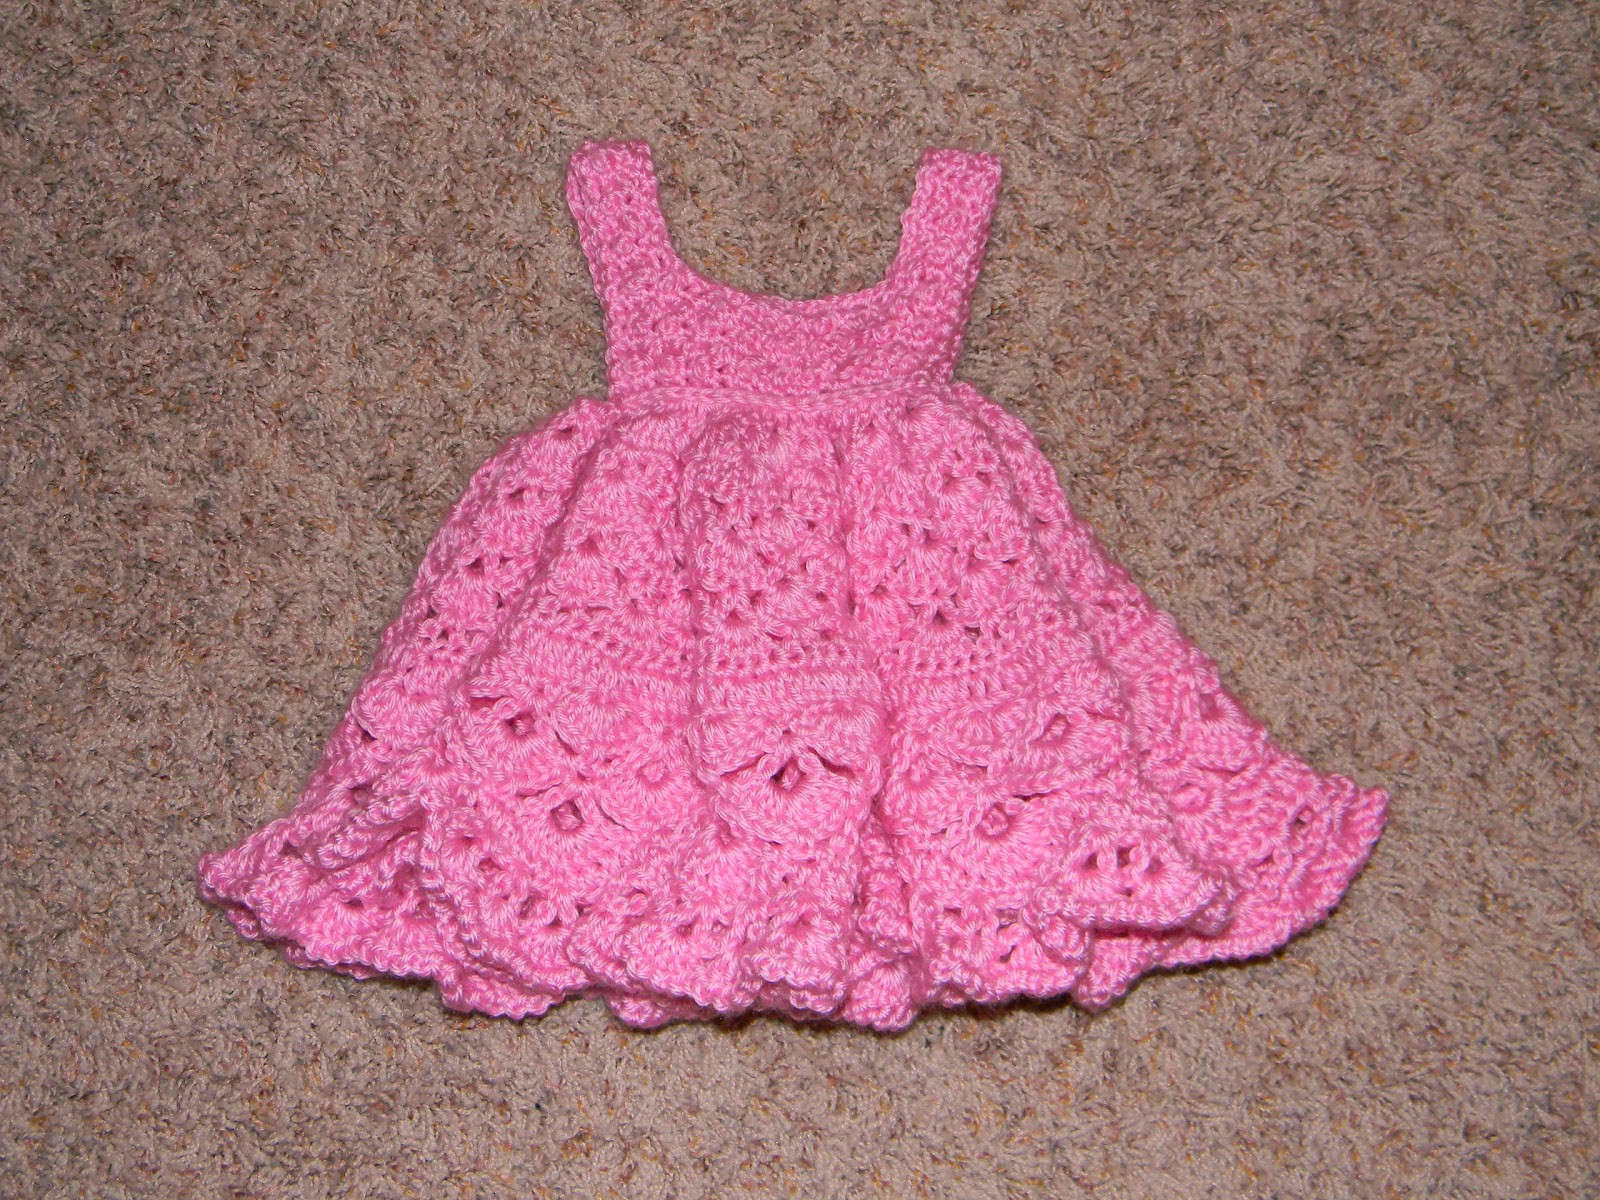 Crochet Baby Outfits Fresh Sassy S Crafty Creations Crochet Baby Girl Dress Of Marvelous 44 Photos Crochet Baby Outfits